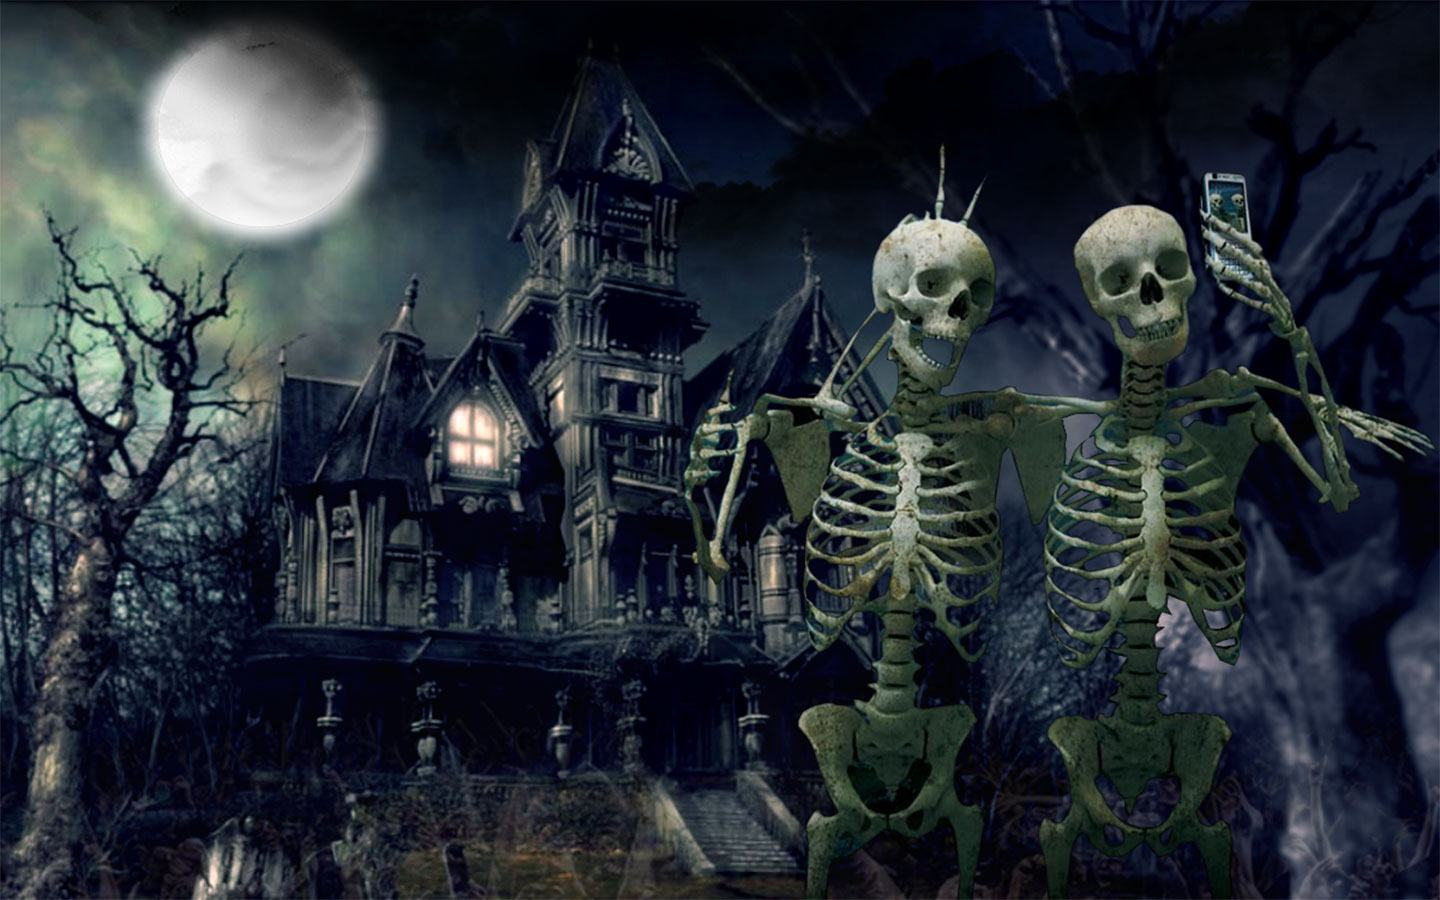 Wallpapers Backgrounds   Haunted House Skeletons wallpaper 1440x900